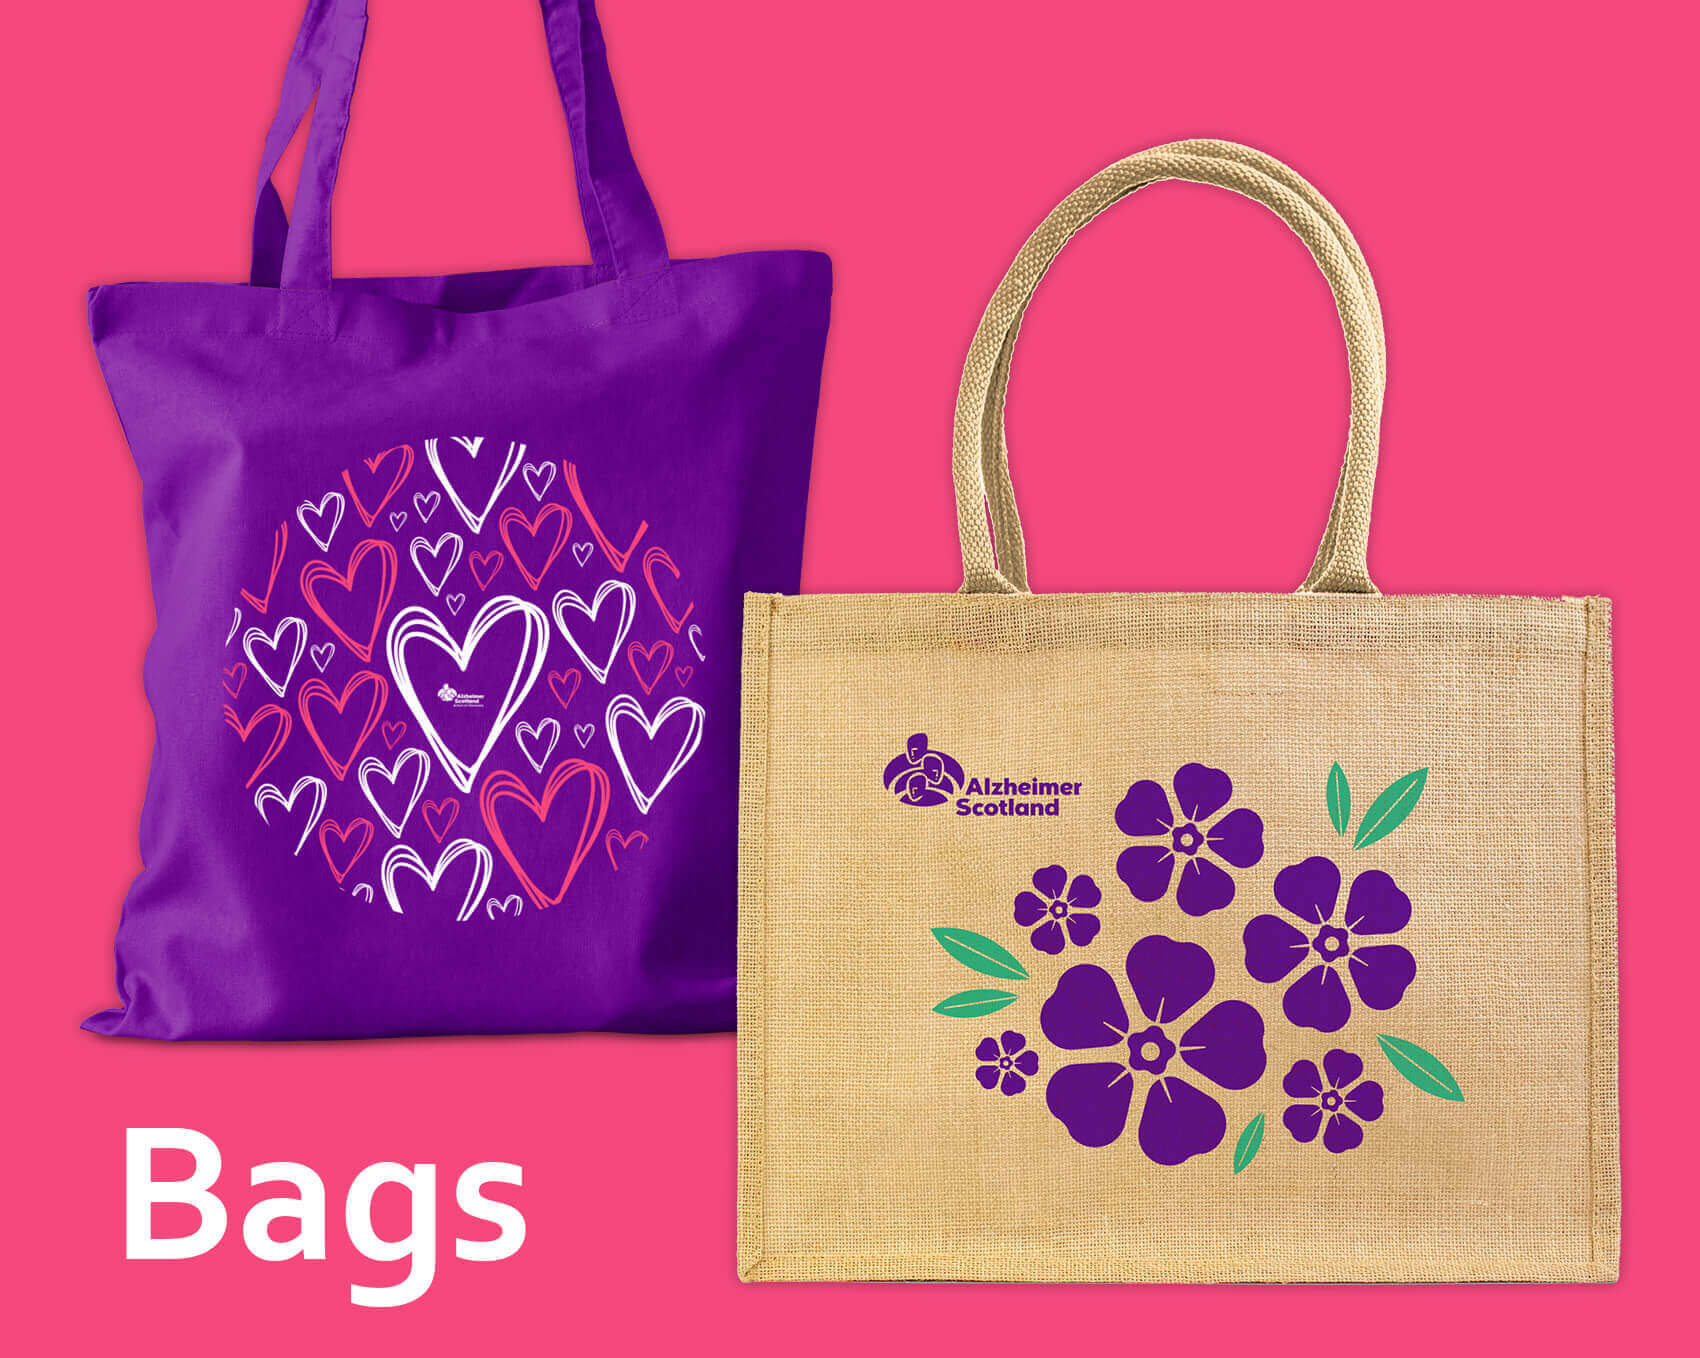 Alzheimer Scotland Bag Range